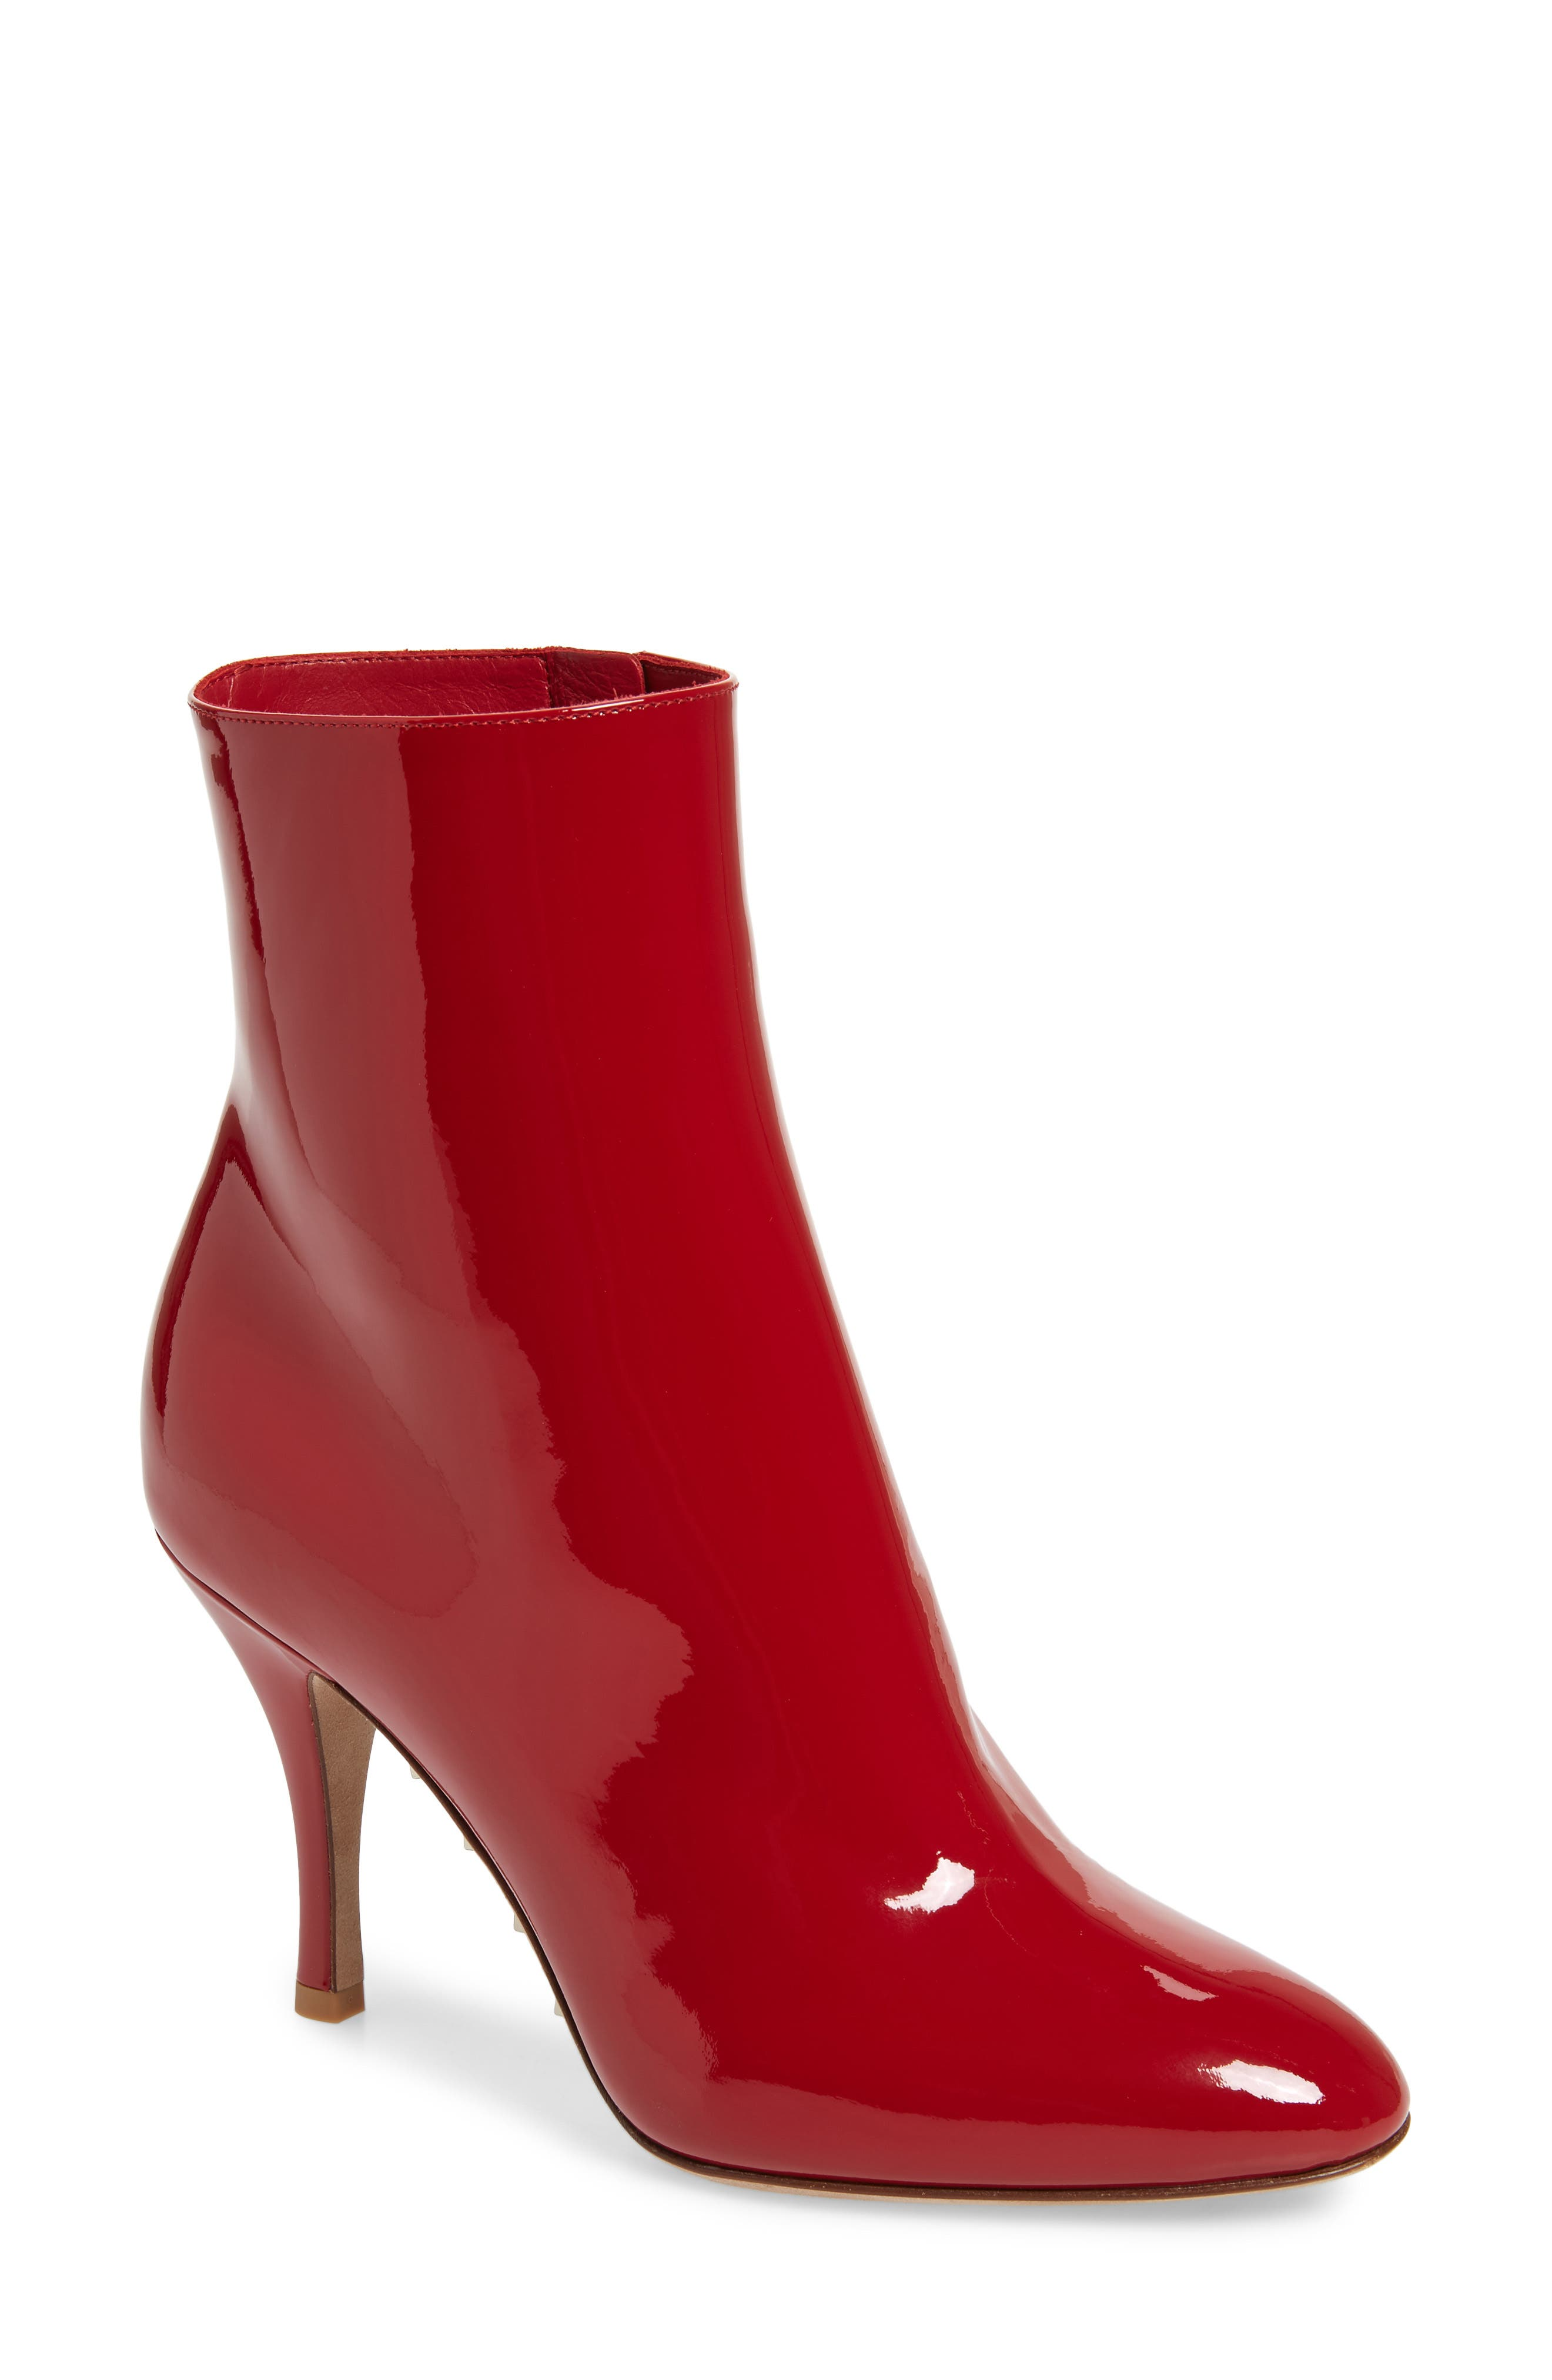 Killer Stud Patent Leather Ankle Boots in Red